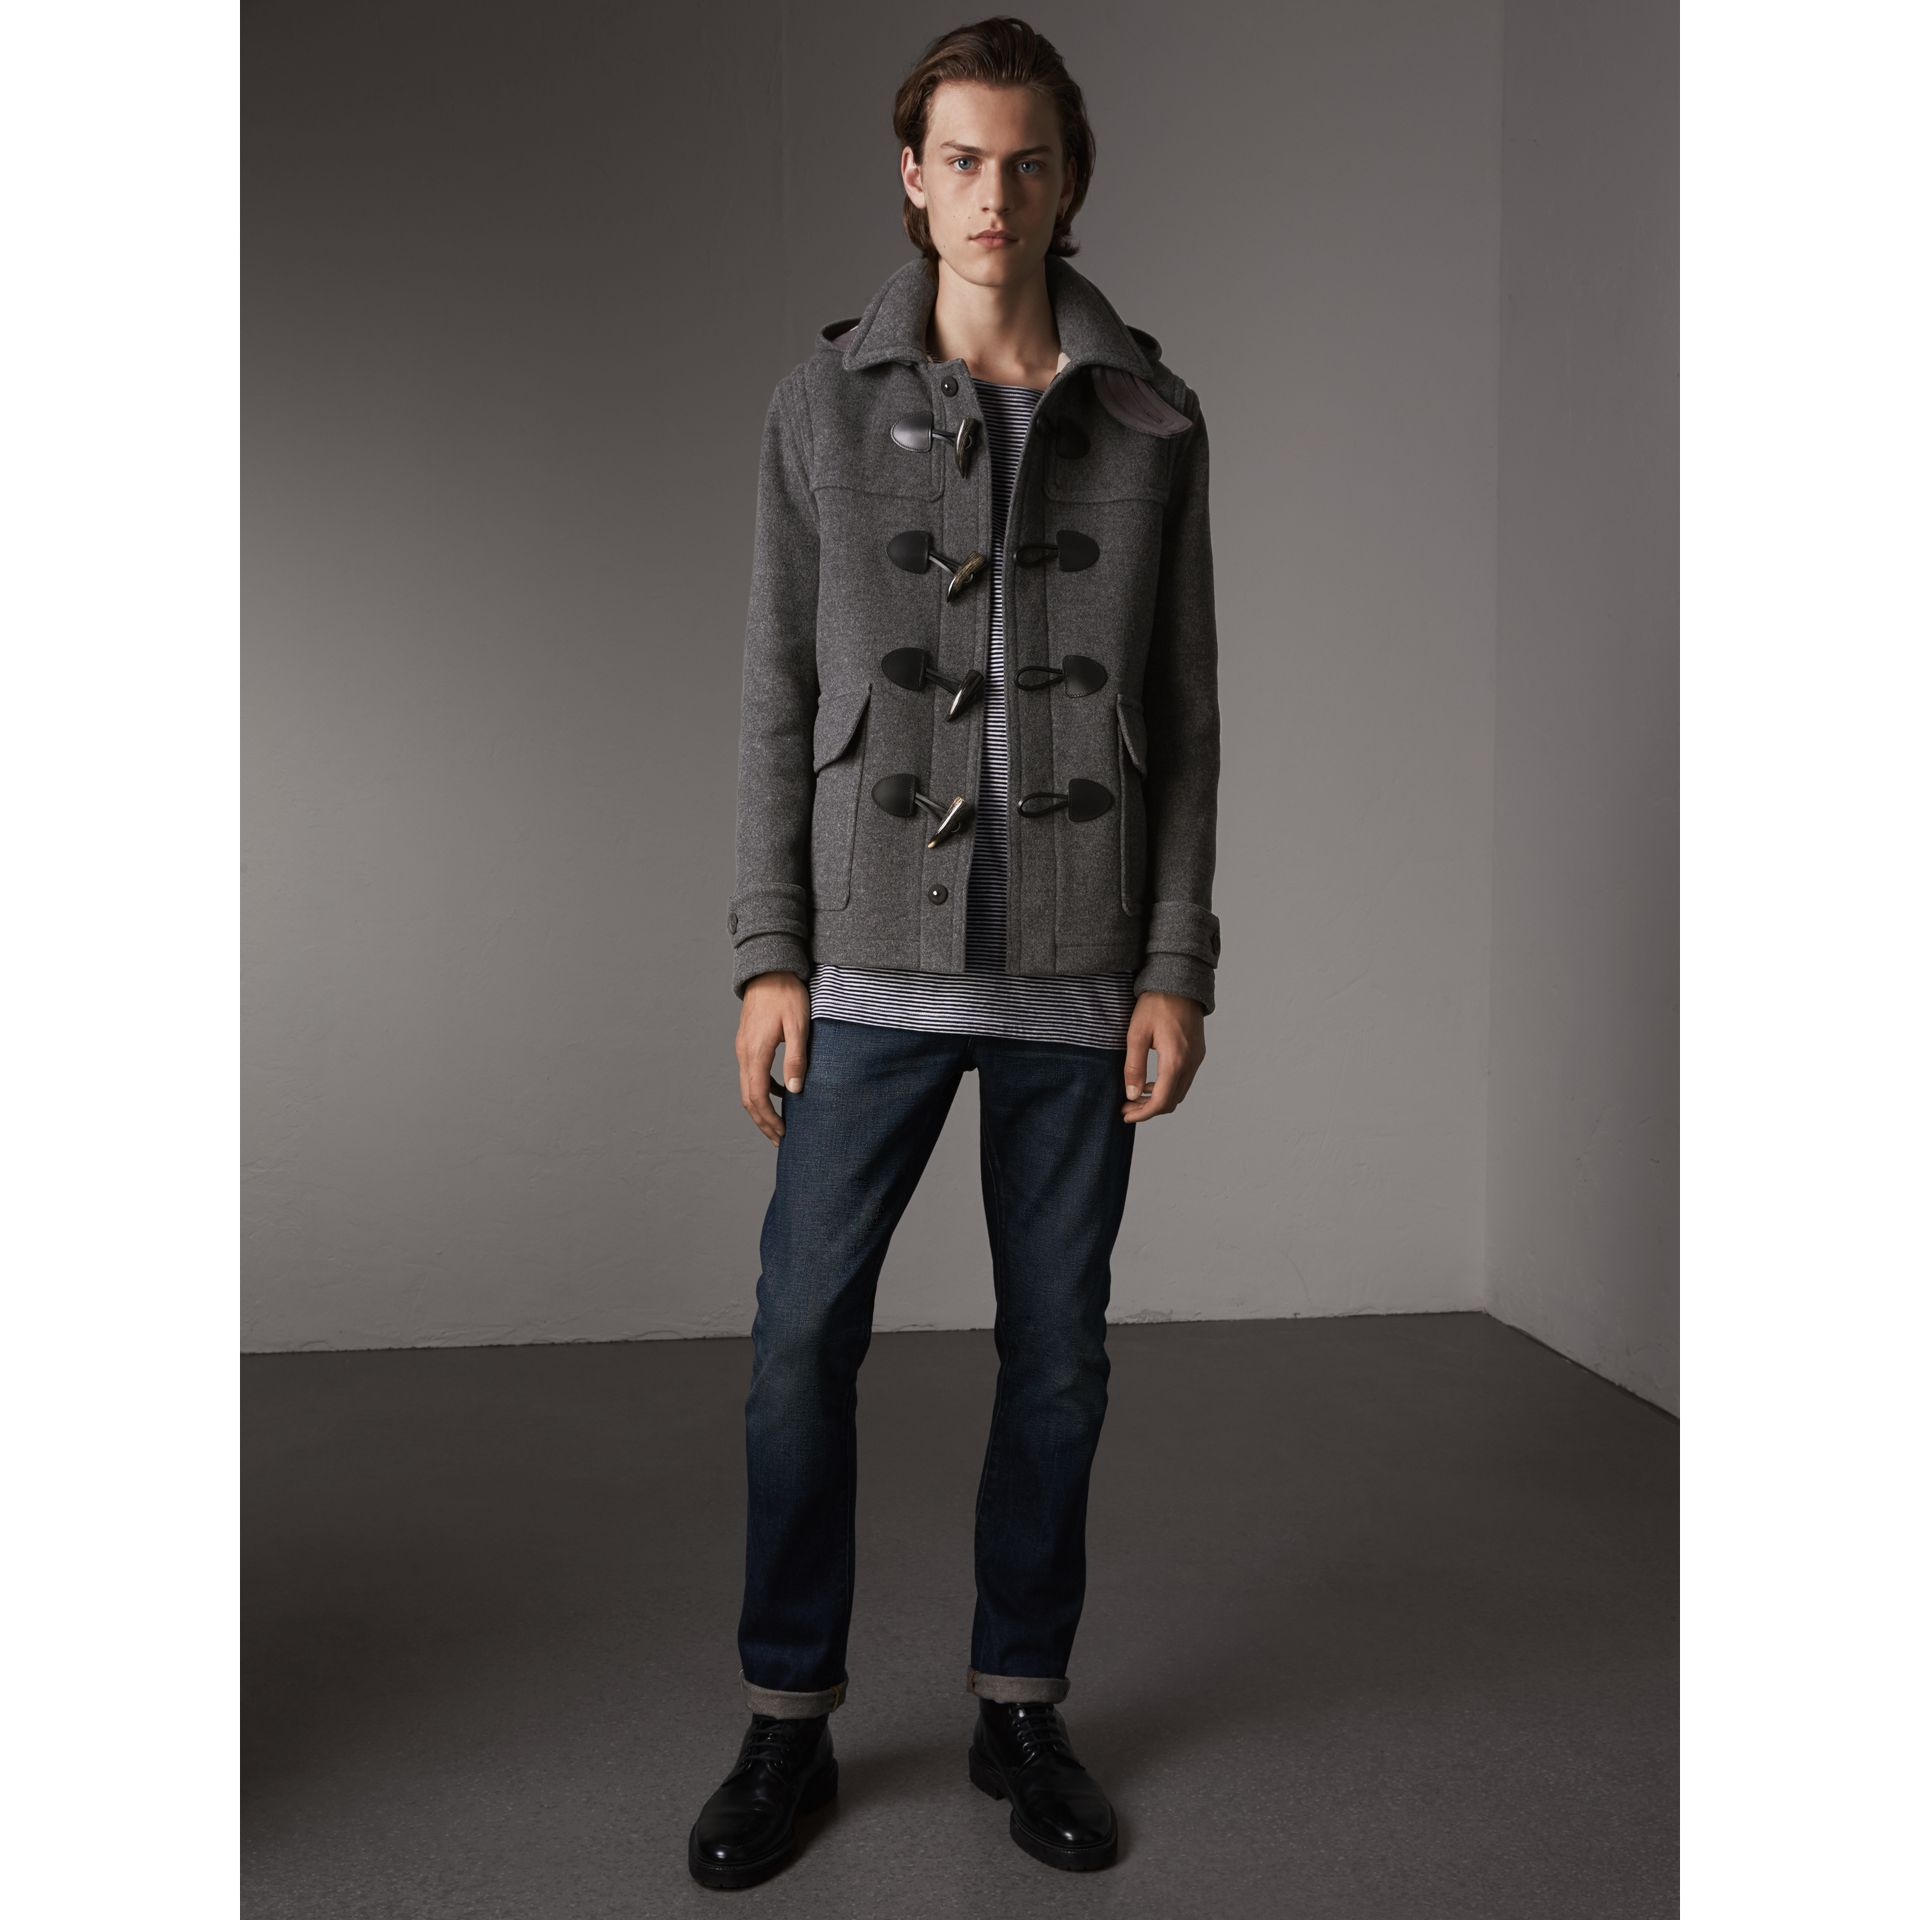 Wool Duffle Jacket with Detachable Hood in Mid Grey Melange - Men | Burberry - gallery image 6